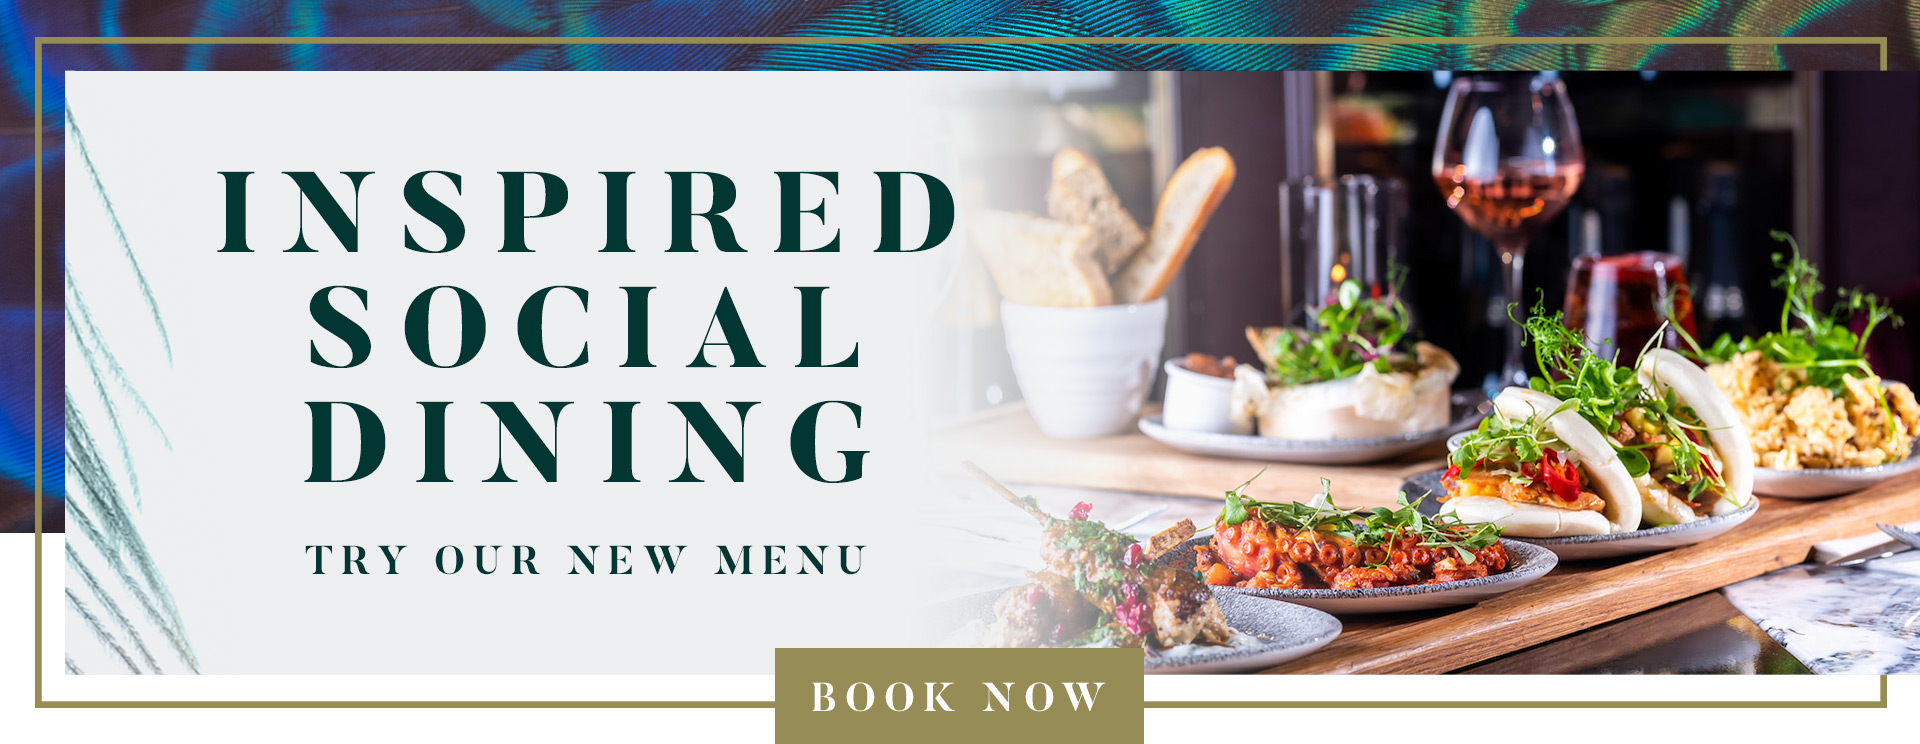 Seasonal must have dishes at The Old Bulls Head - Book Now